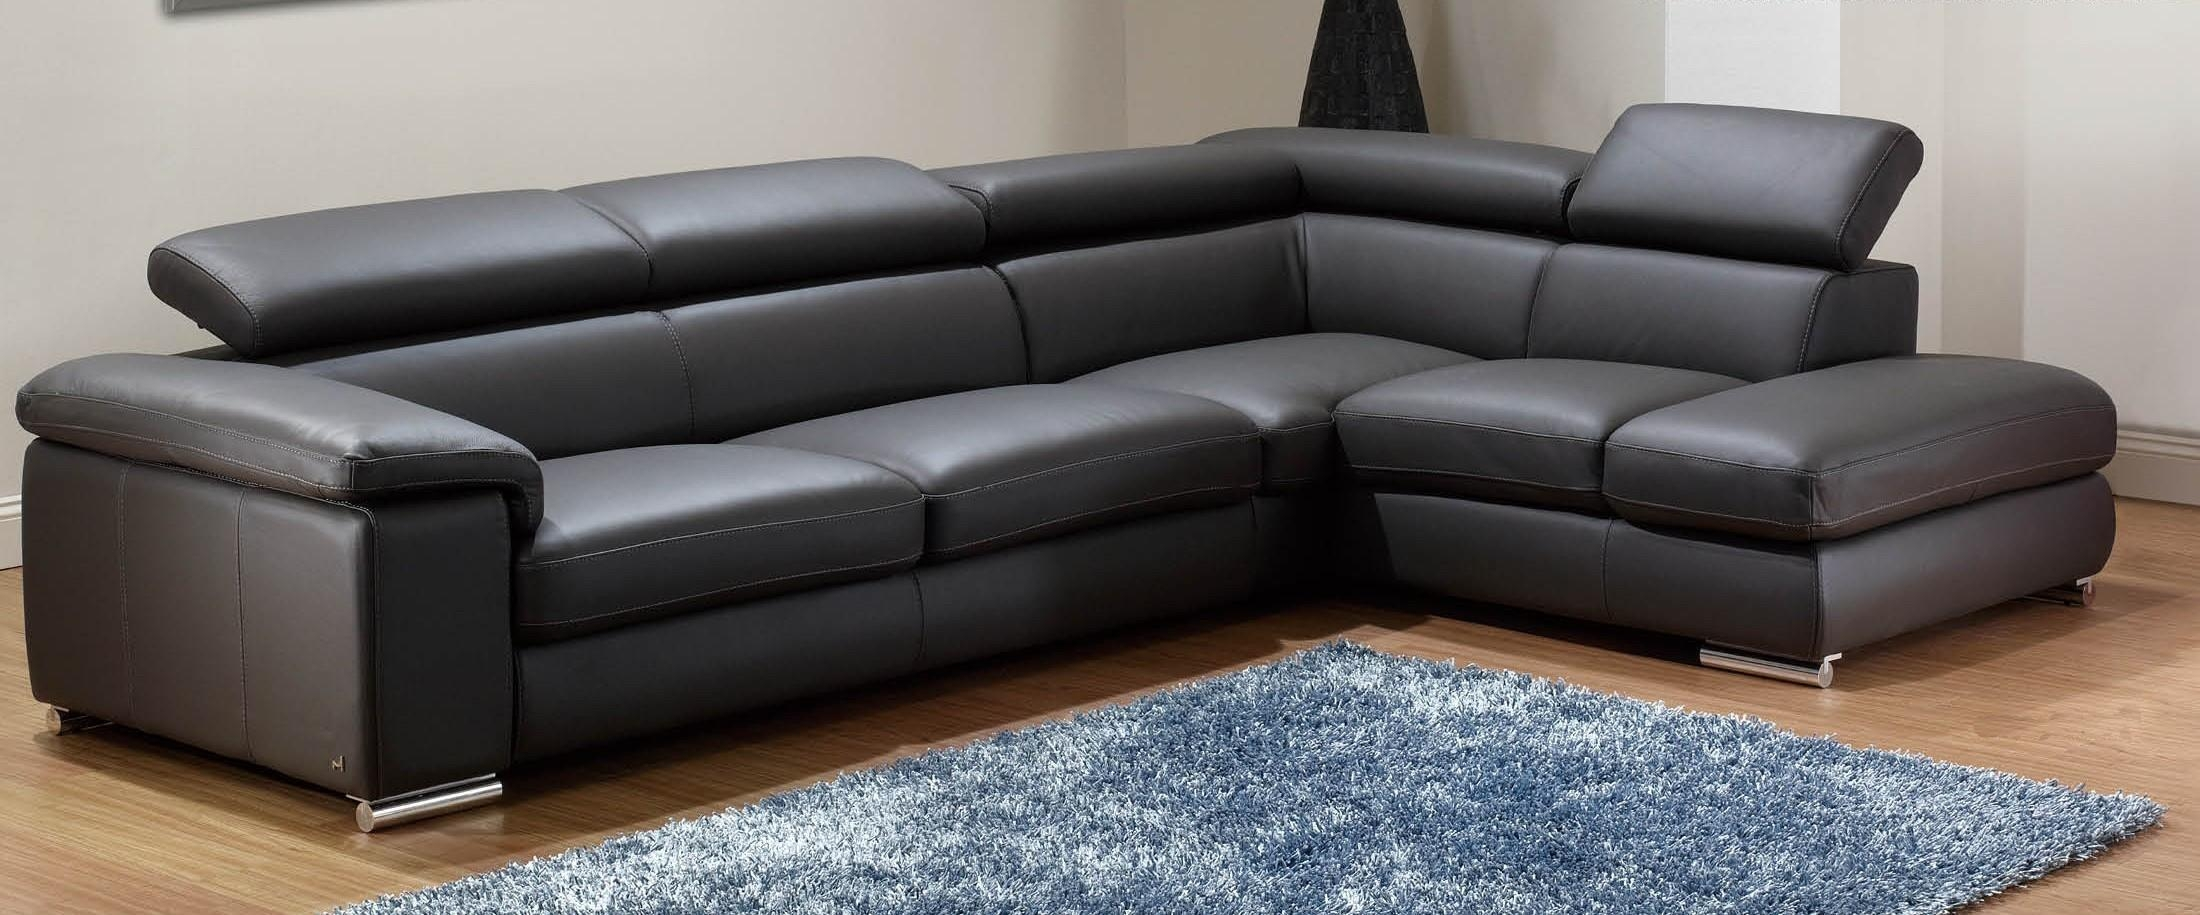 Sectional Sofa Design : Sectional Sofas Near Me Short Silver Feet With Short Sofas (Image 13 of 20)